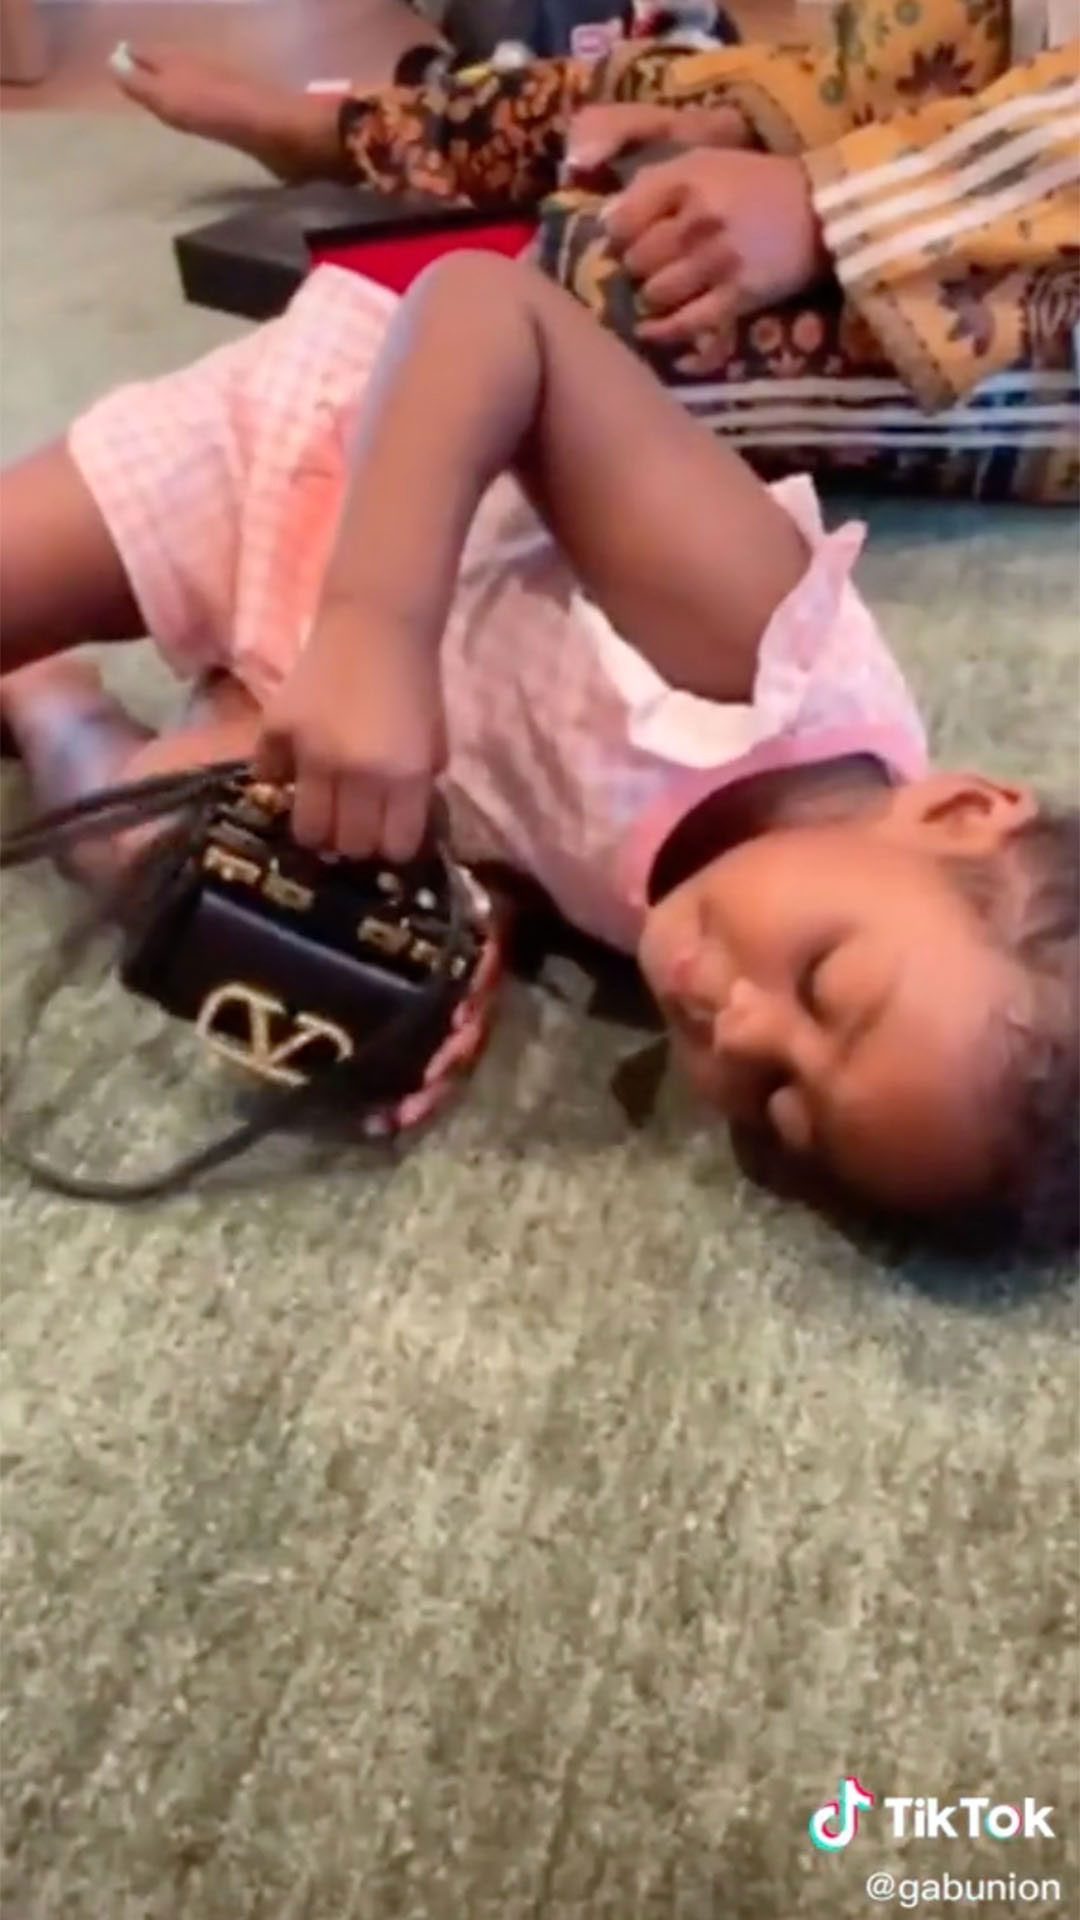 Kaavia Is in Awe, Models New Valentino Purse Gifted from Mom Gabrielle Union